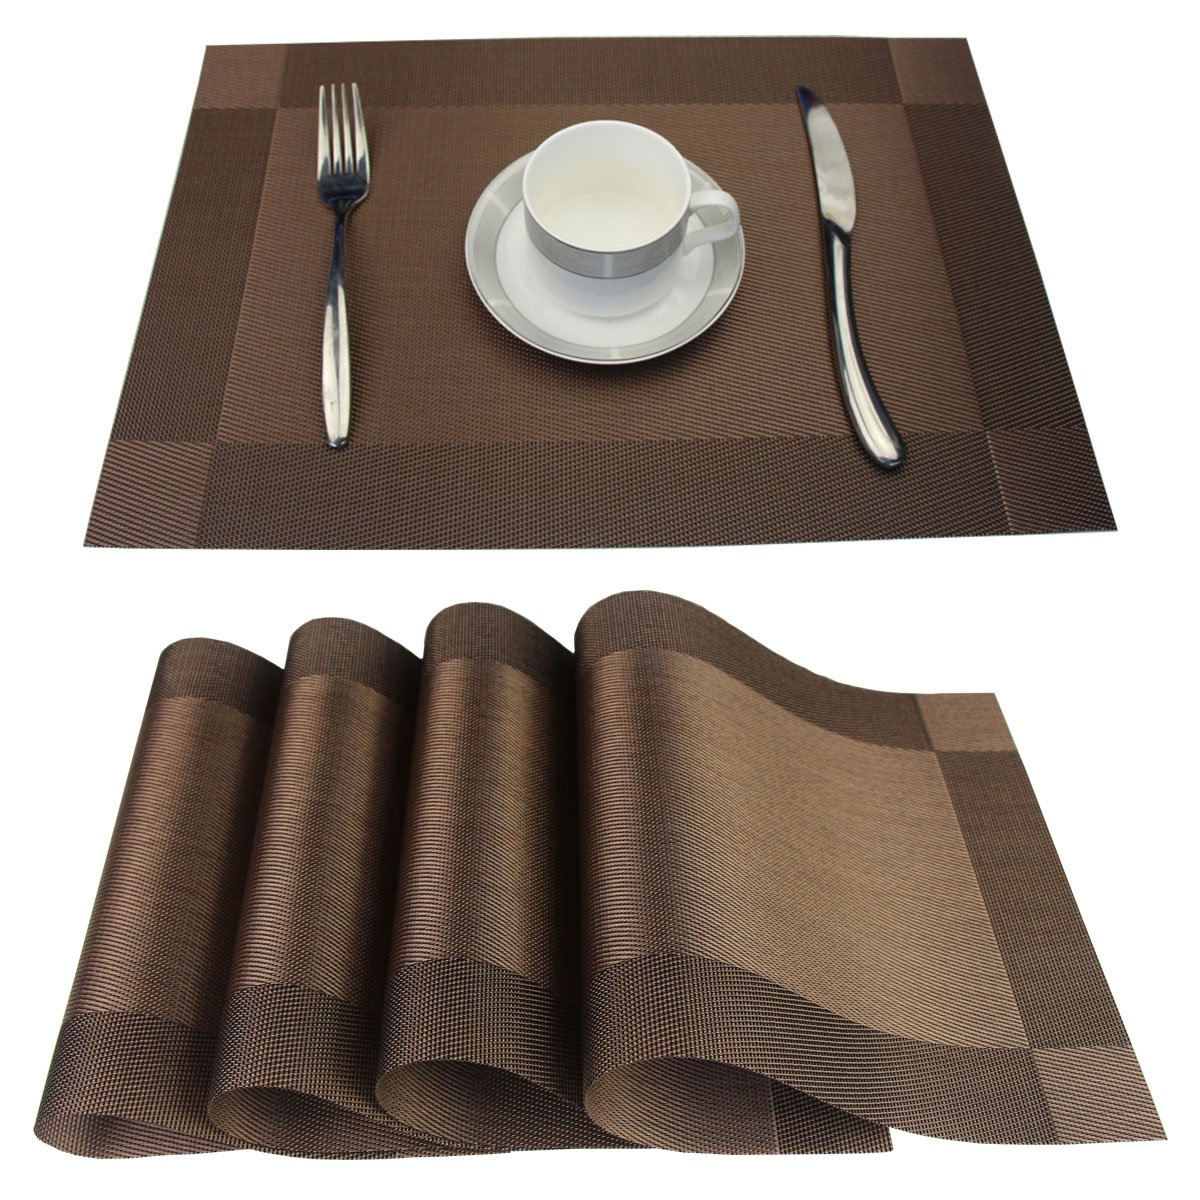 Placemats Set of 6 Stain Resistant PVC Placemat for Dining Table Woven Vinyl Heat-resistantS Table Mats Easy to Clean (Brown, 6)